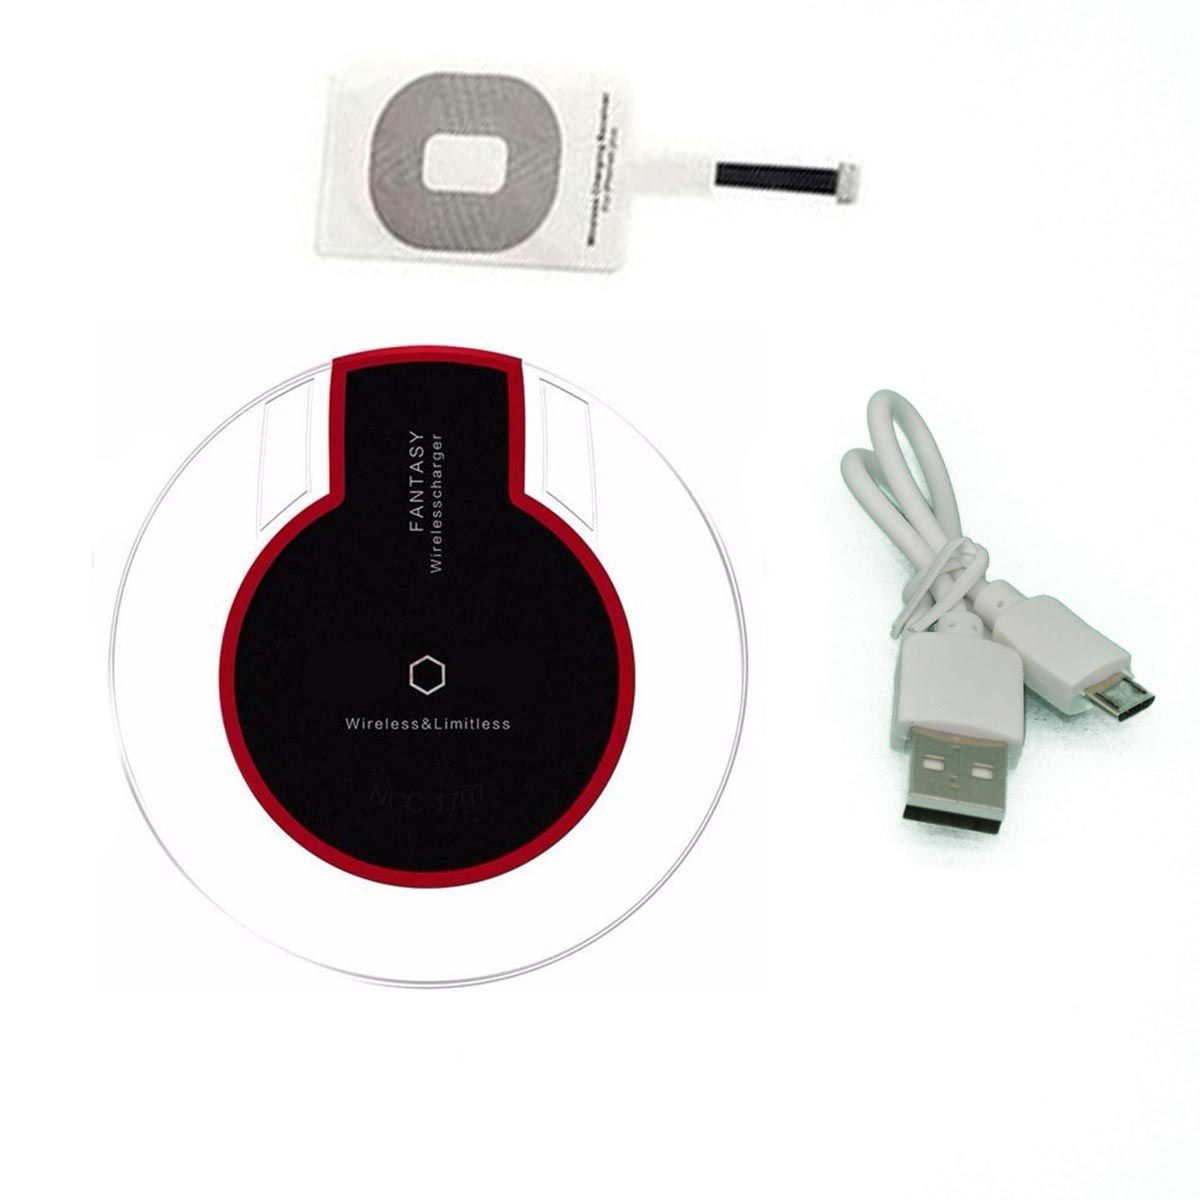 Carregador inducao Sem Fio Wireless Qi Celular Carga Para Iphone IOS (BSL-INDU-1/BSL-INDU-4/IPHONE)